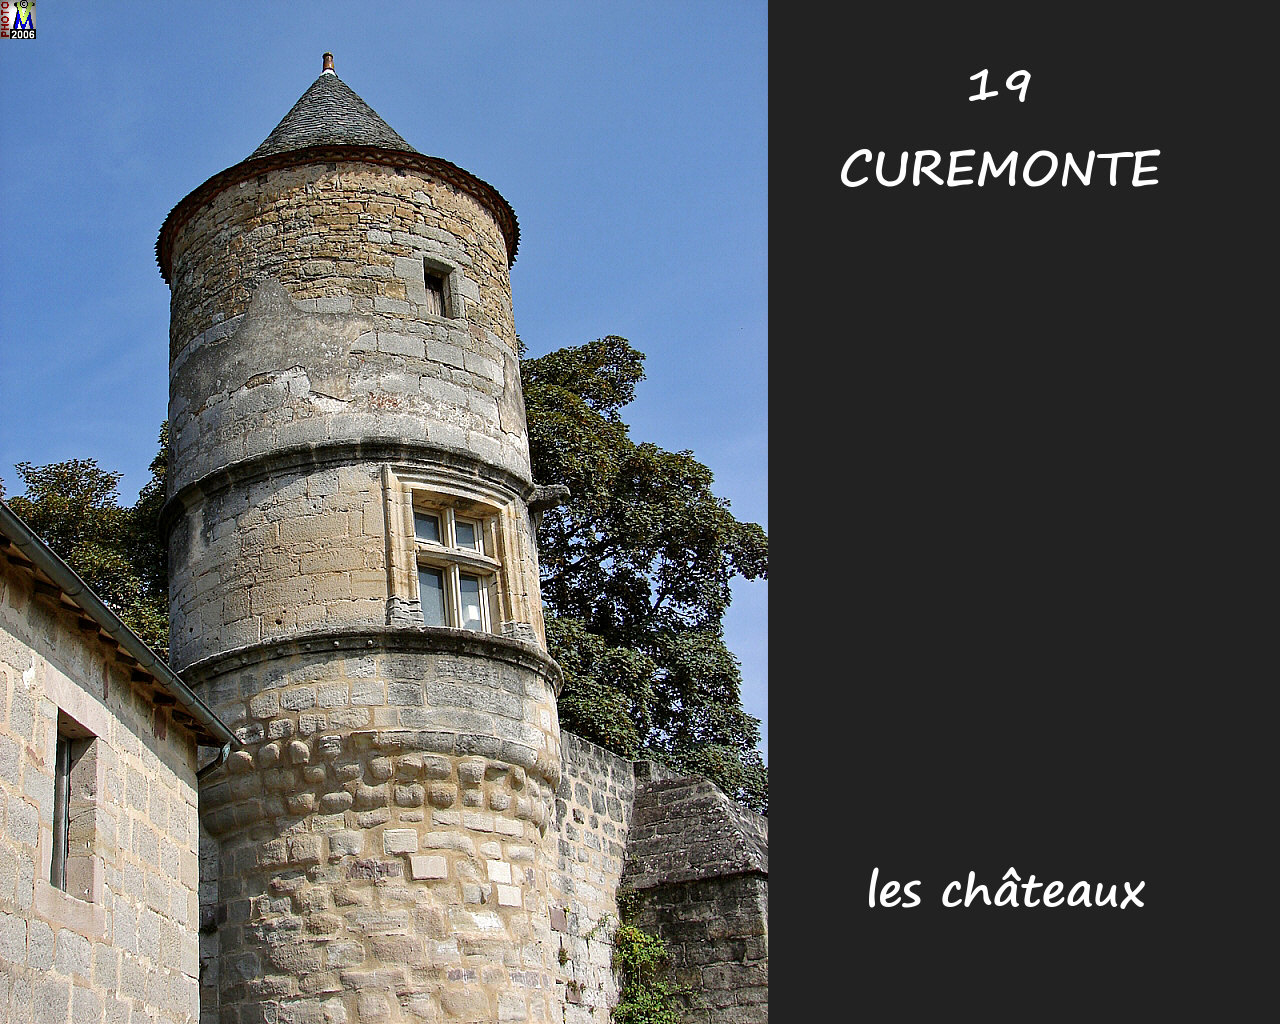 19CUREMONTE_chateau_132.jpg